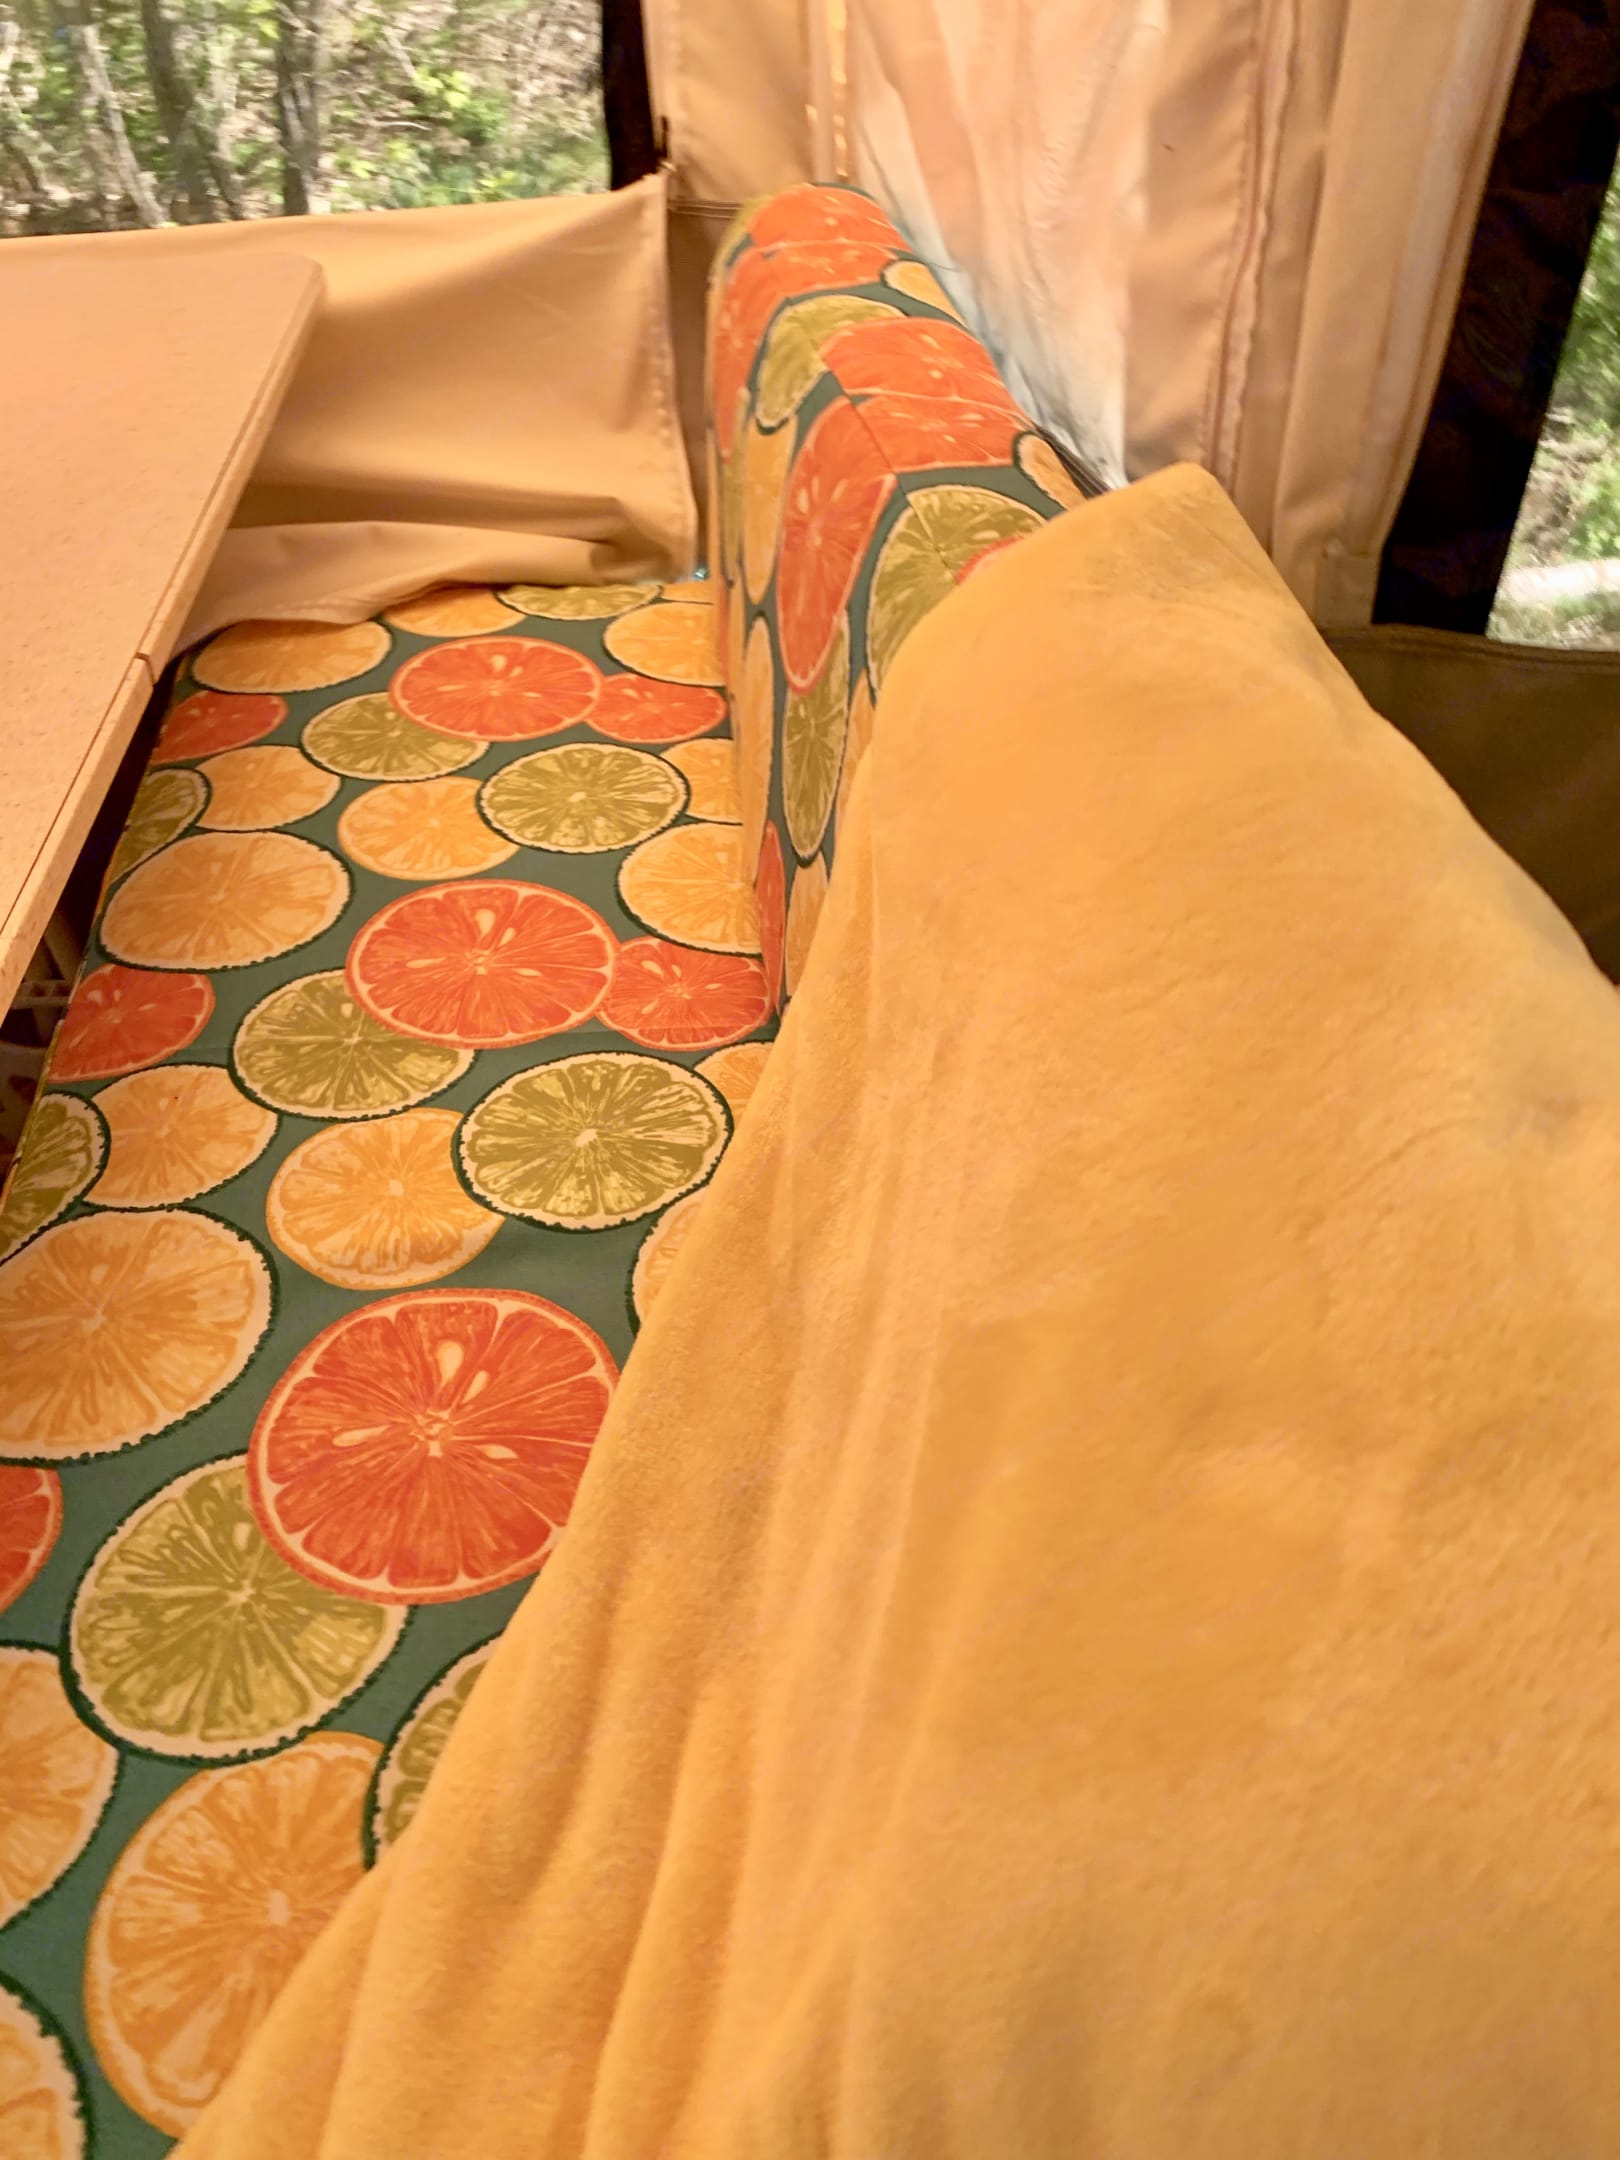 All of the cushions are reversible to a solid color on the back side and have extra batting for comfort.  Super soft & comfy throw blankets included.. Flagstaff 228D 2007